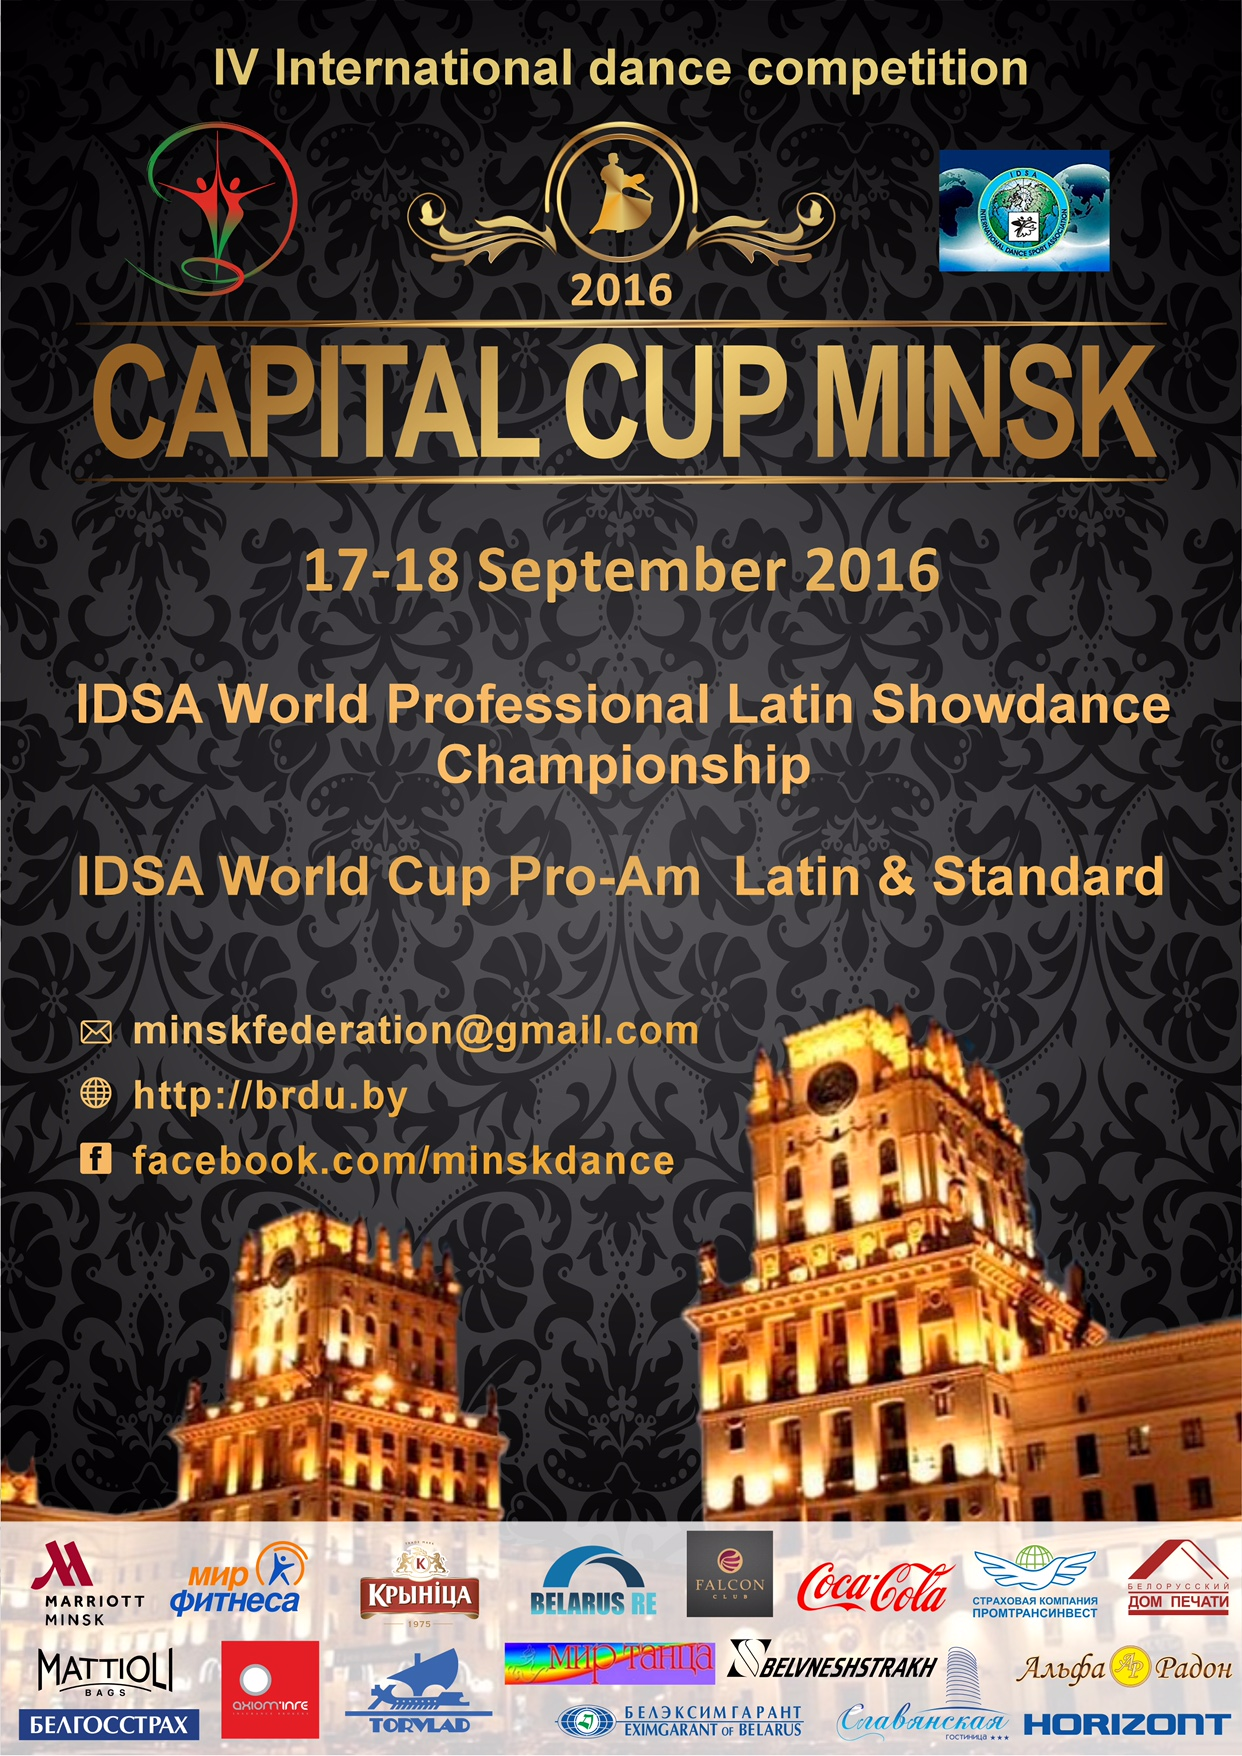 Capital Cup Minsk 2016